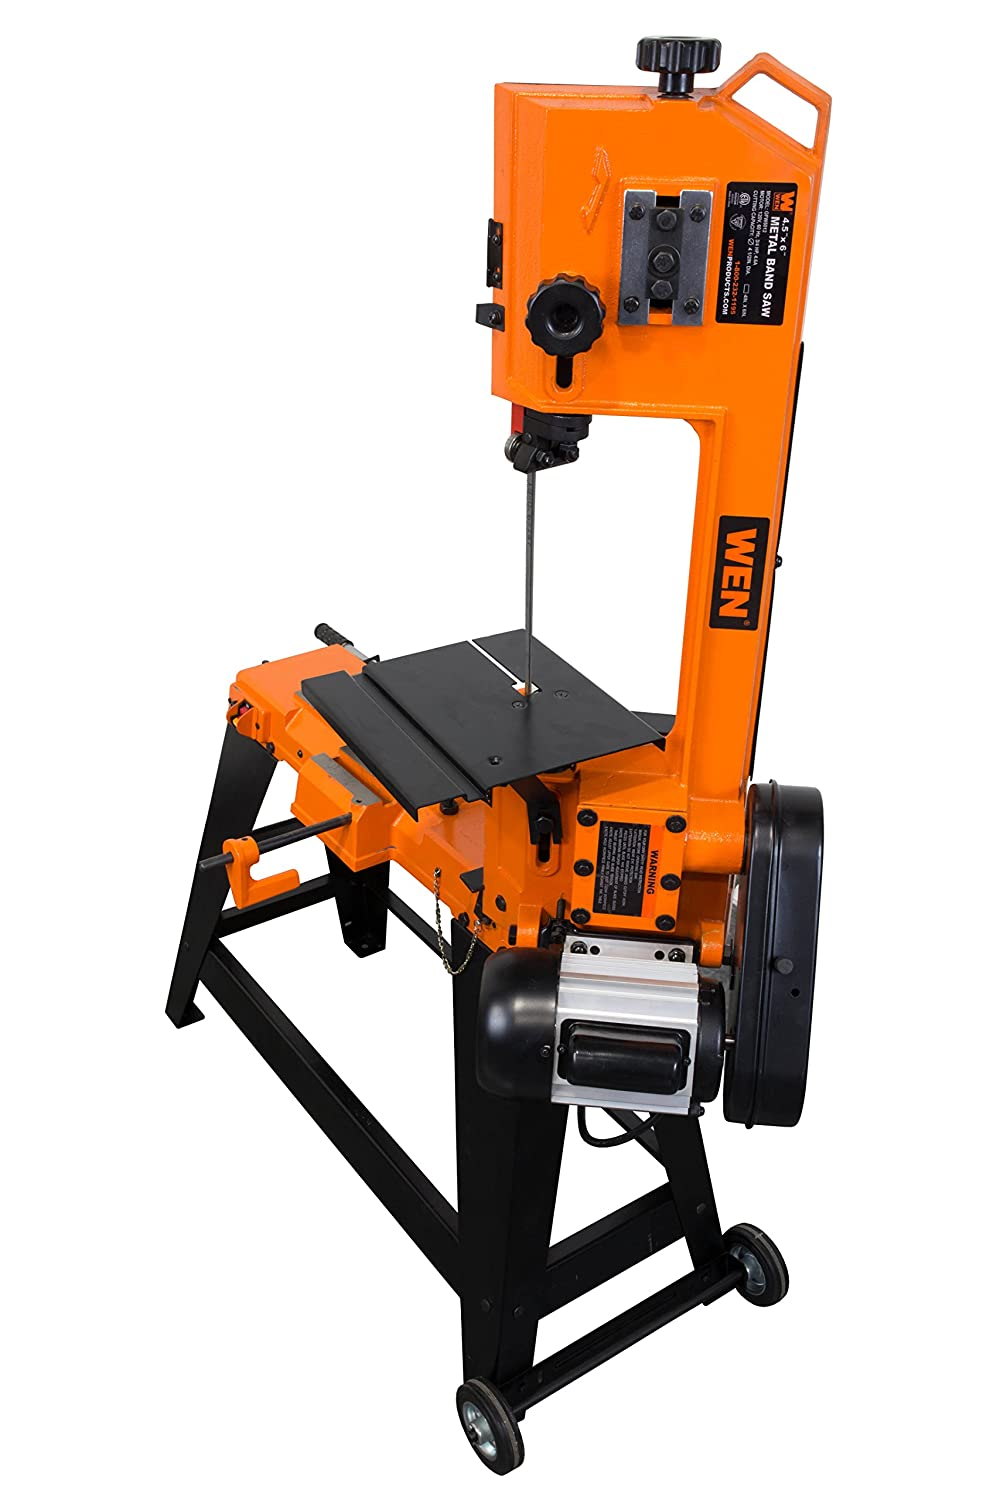 WEN 3970 Metal-Cutting Band Saw with Stand, 4